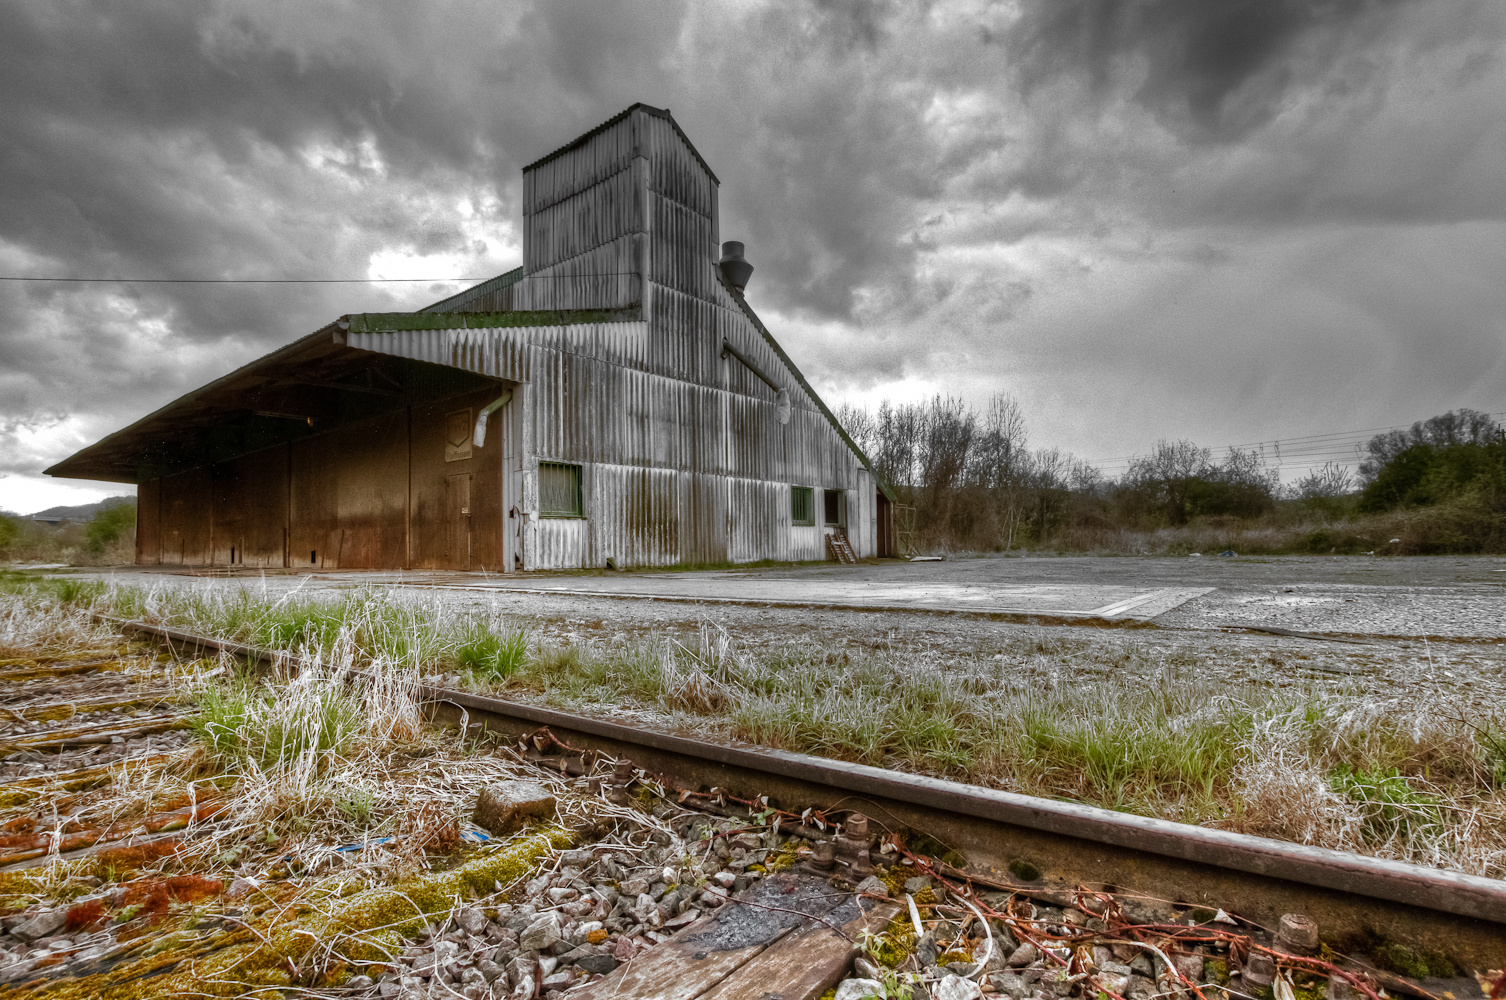 Warehouse in HDR - 1